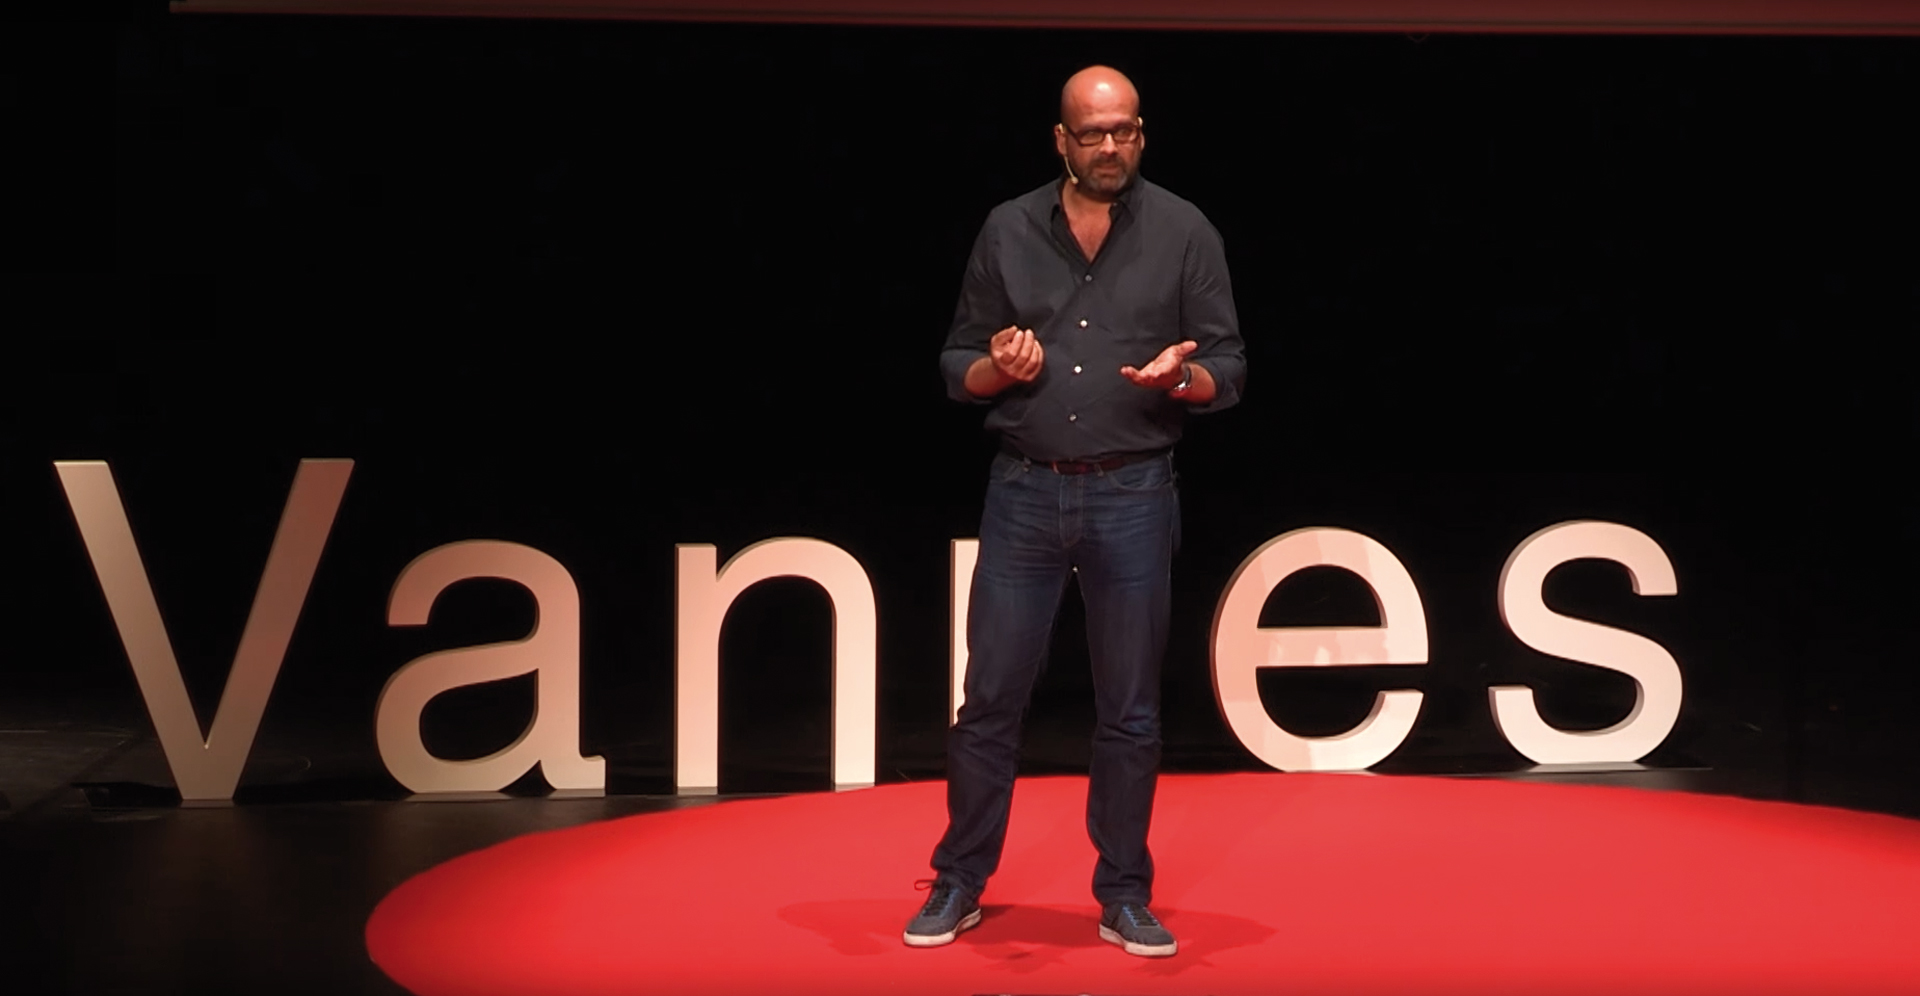 Laurent Sanchez TEDX Vannes Street Art Avenue Petition Change